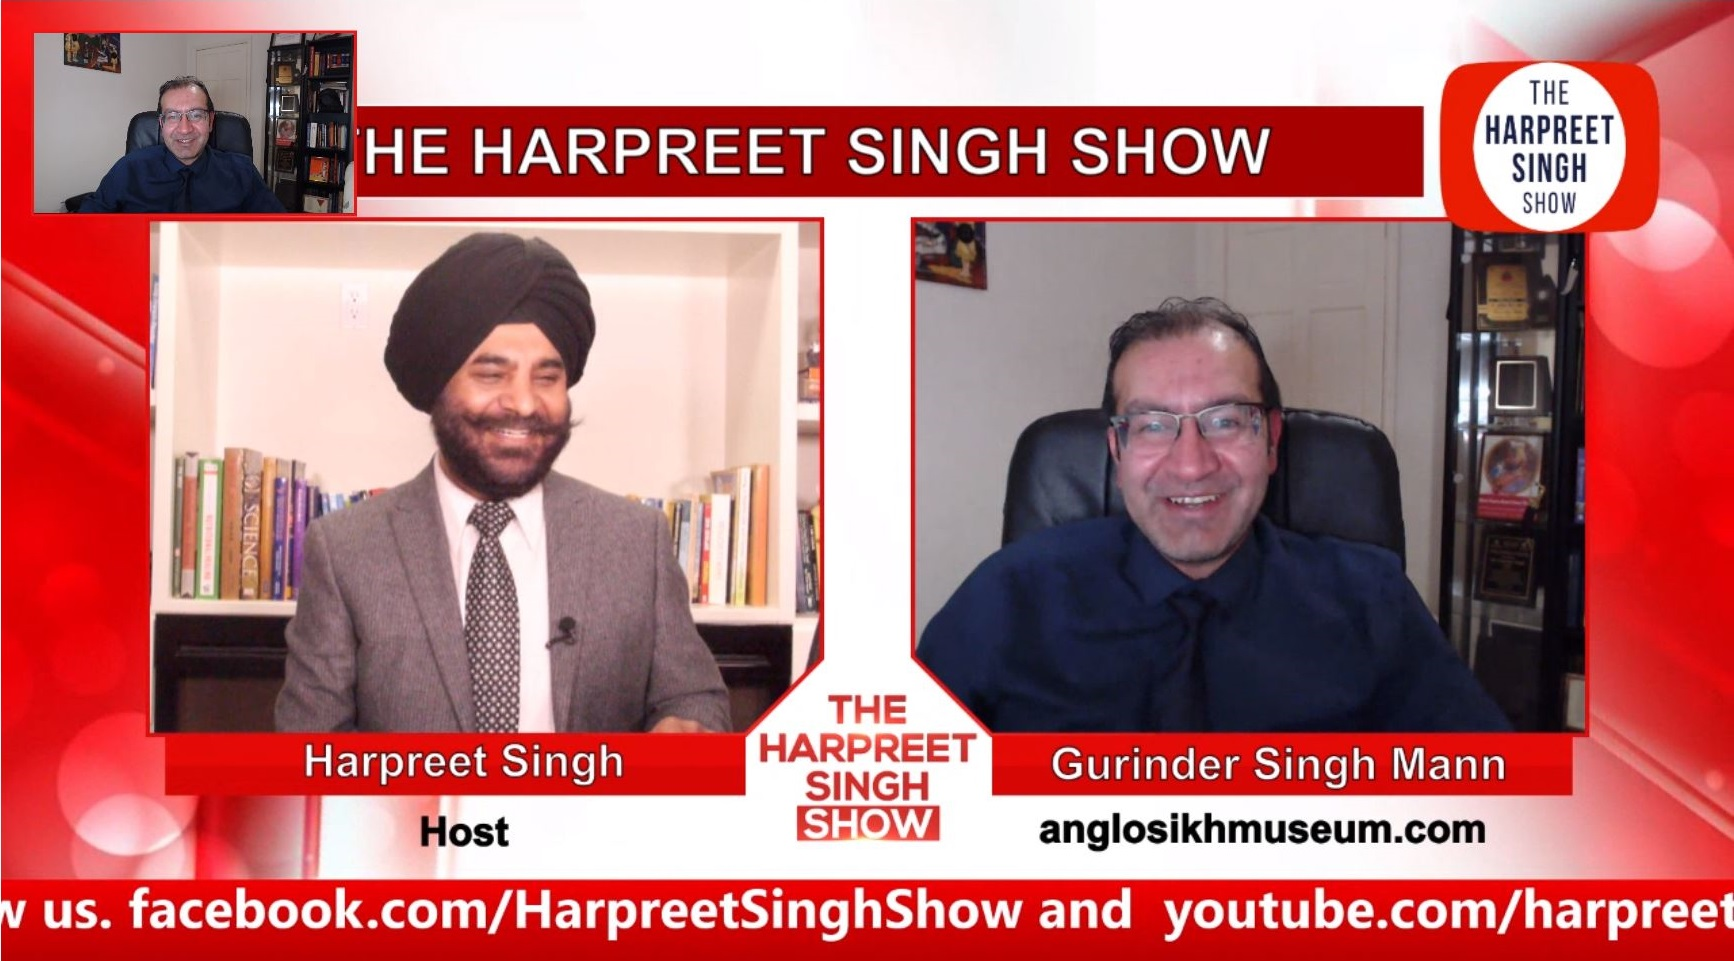 Gurinder Singh Mann interviewed on The Harpreet Singh Show